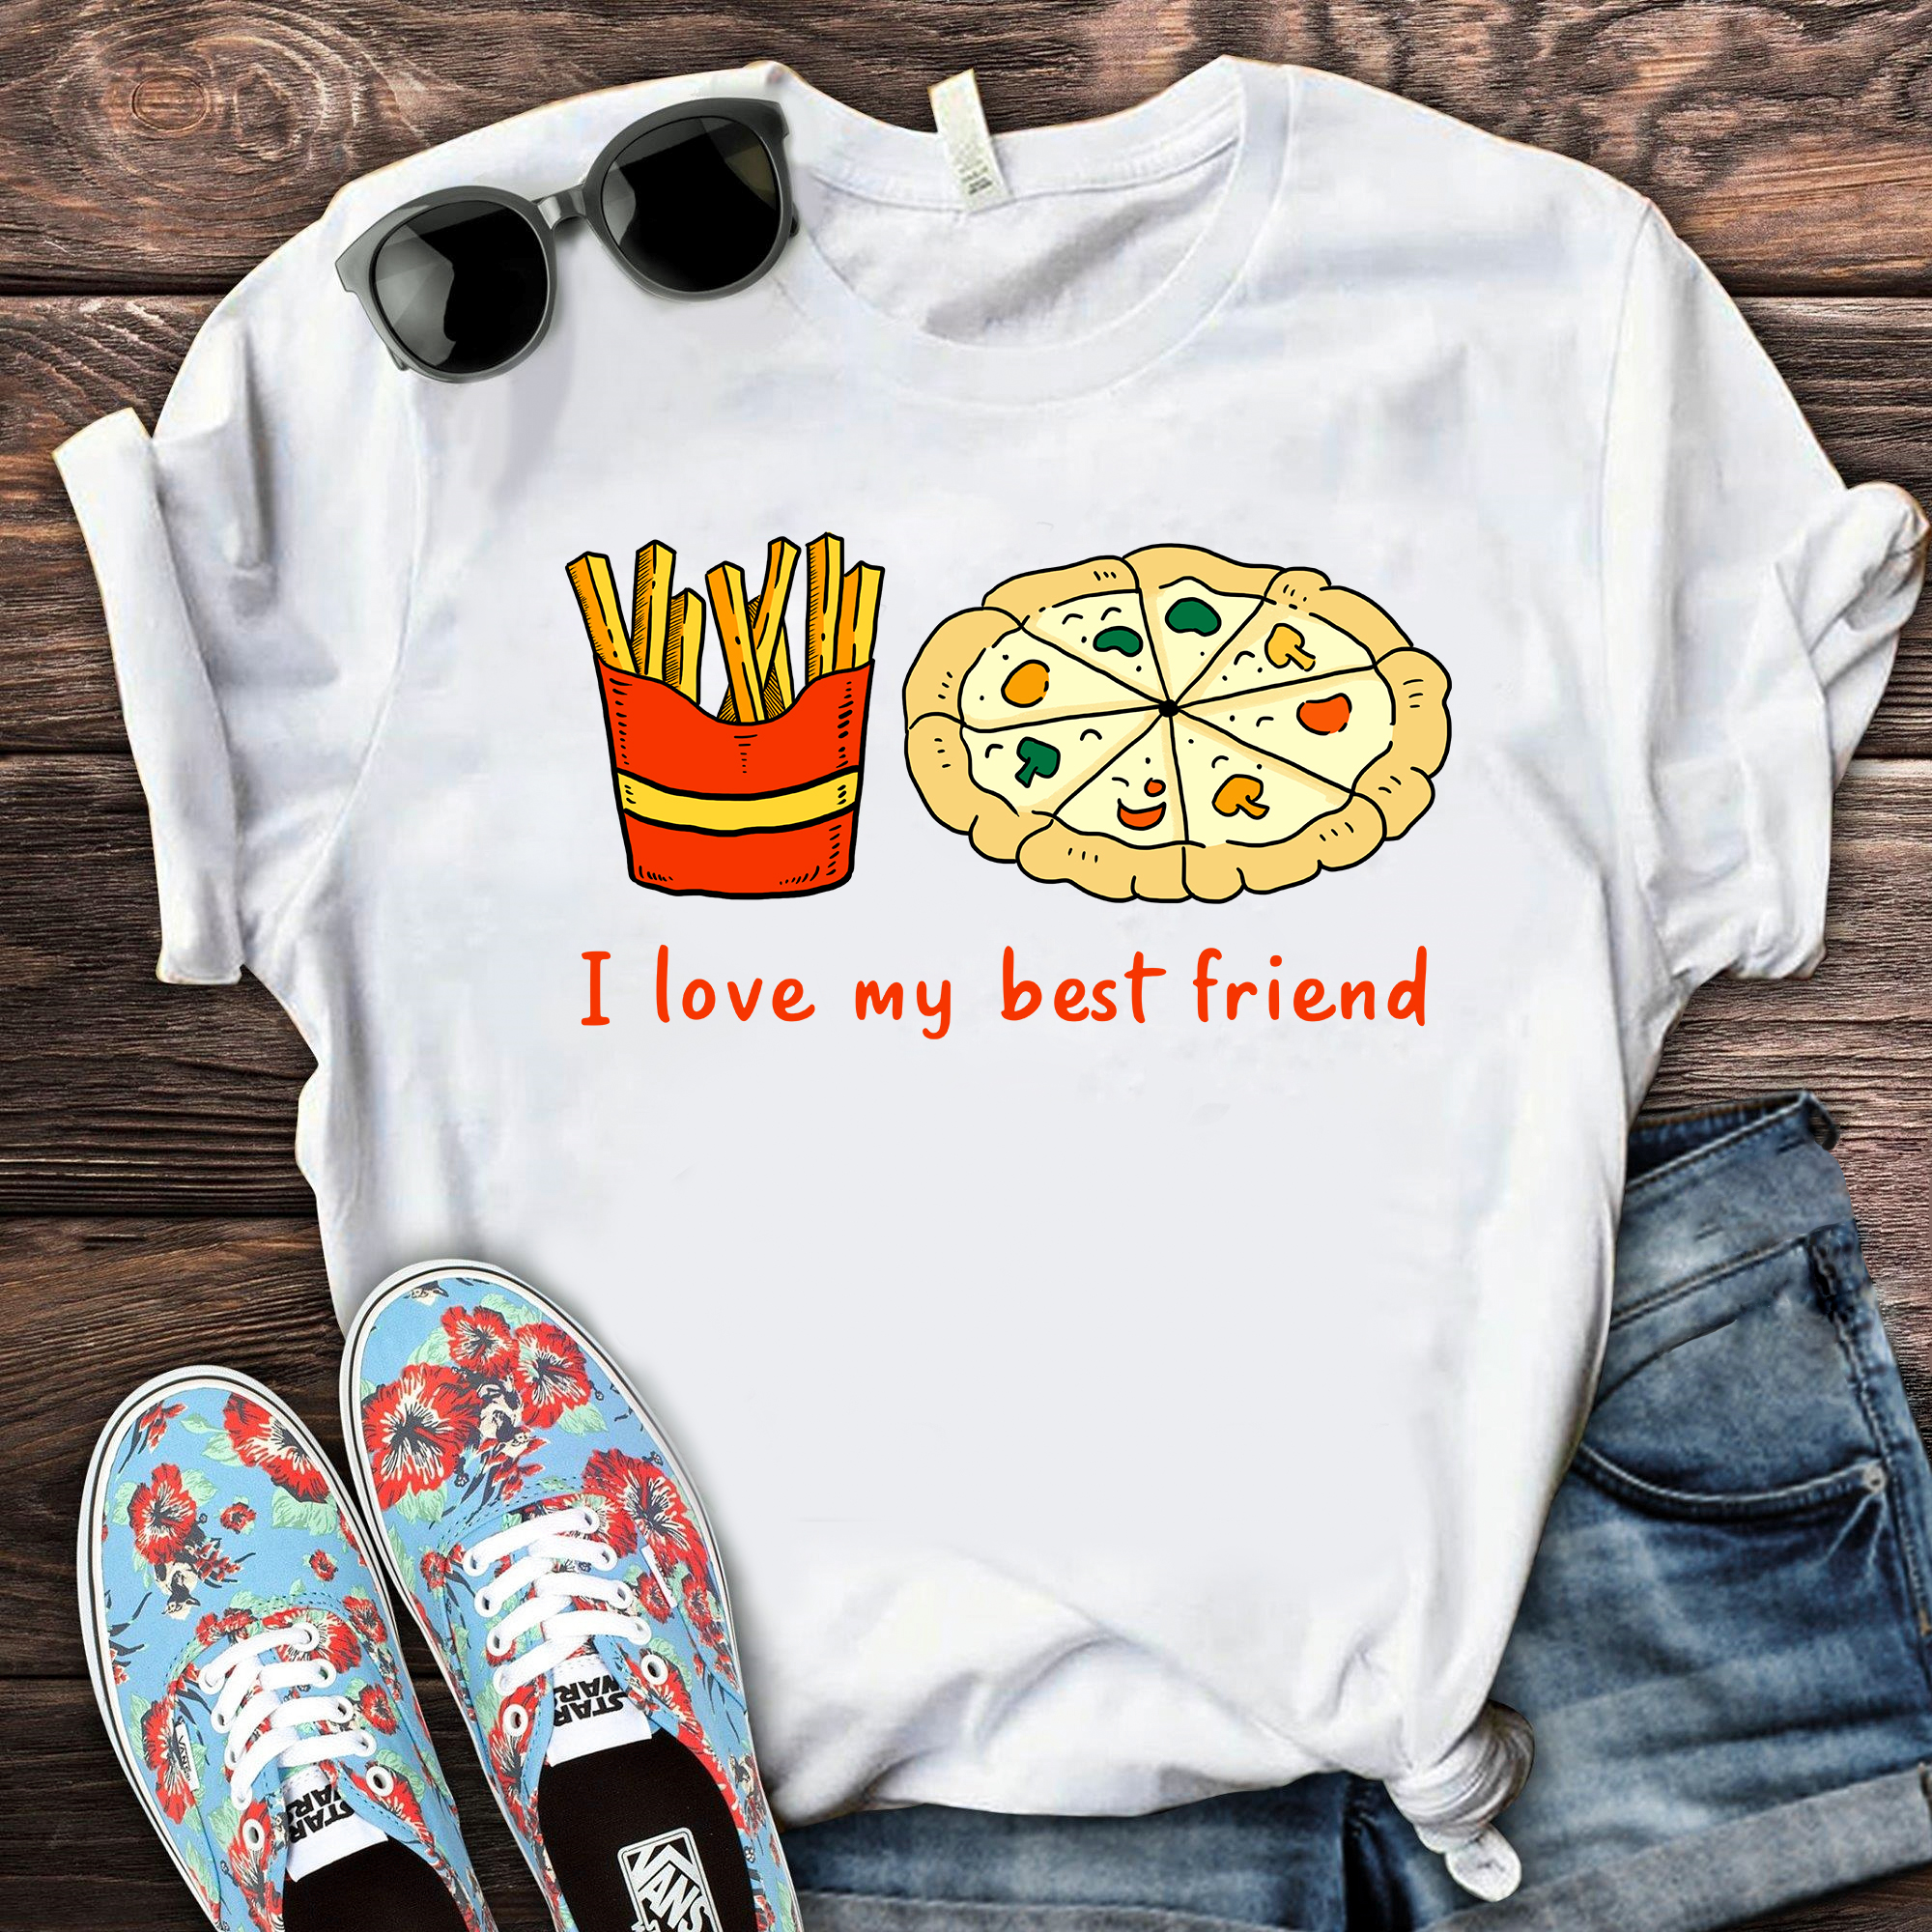 I Love My Best Friend Shirt